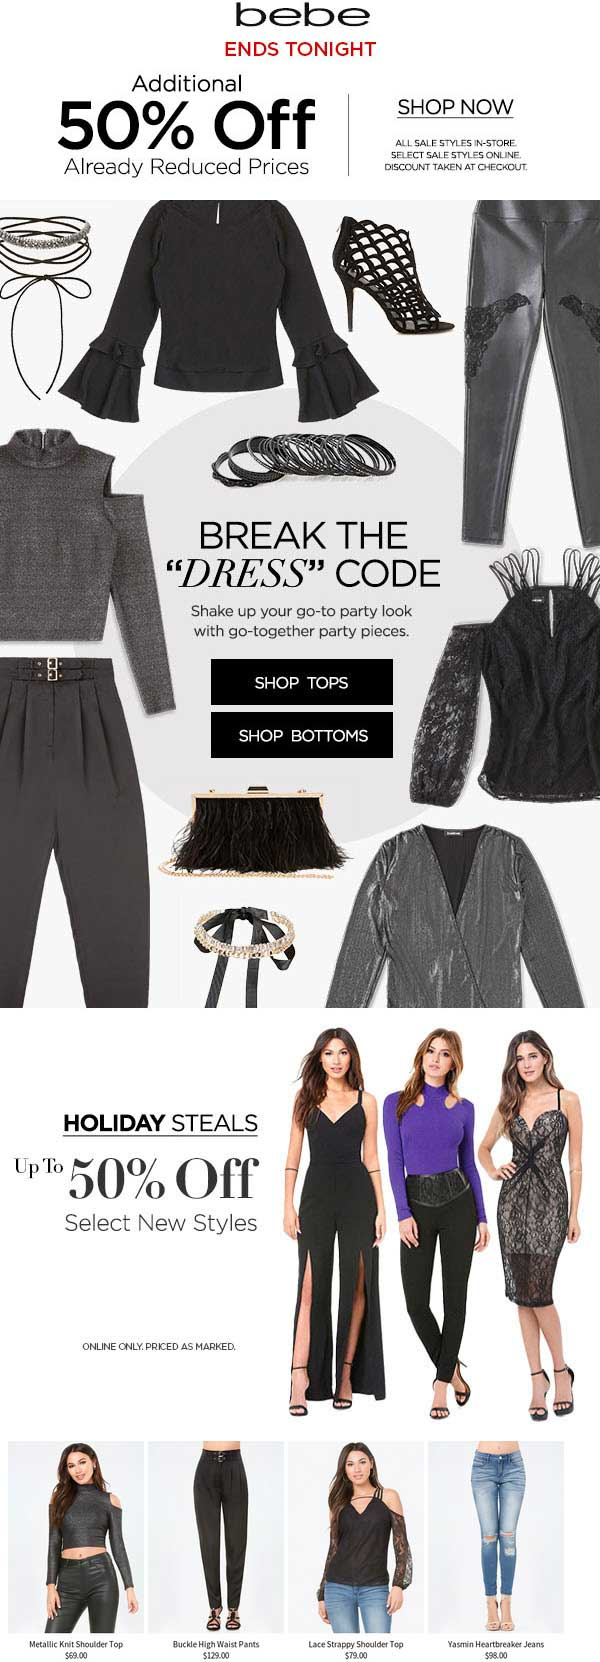 bebe.com Promo Coupon Extra 50% off sale items today at bebe, ditto online